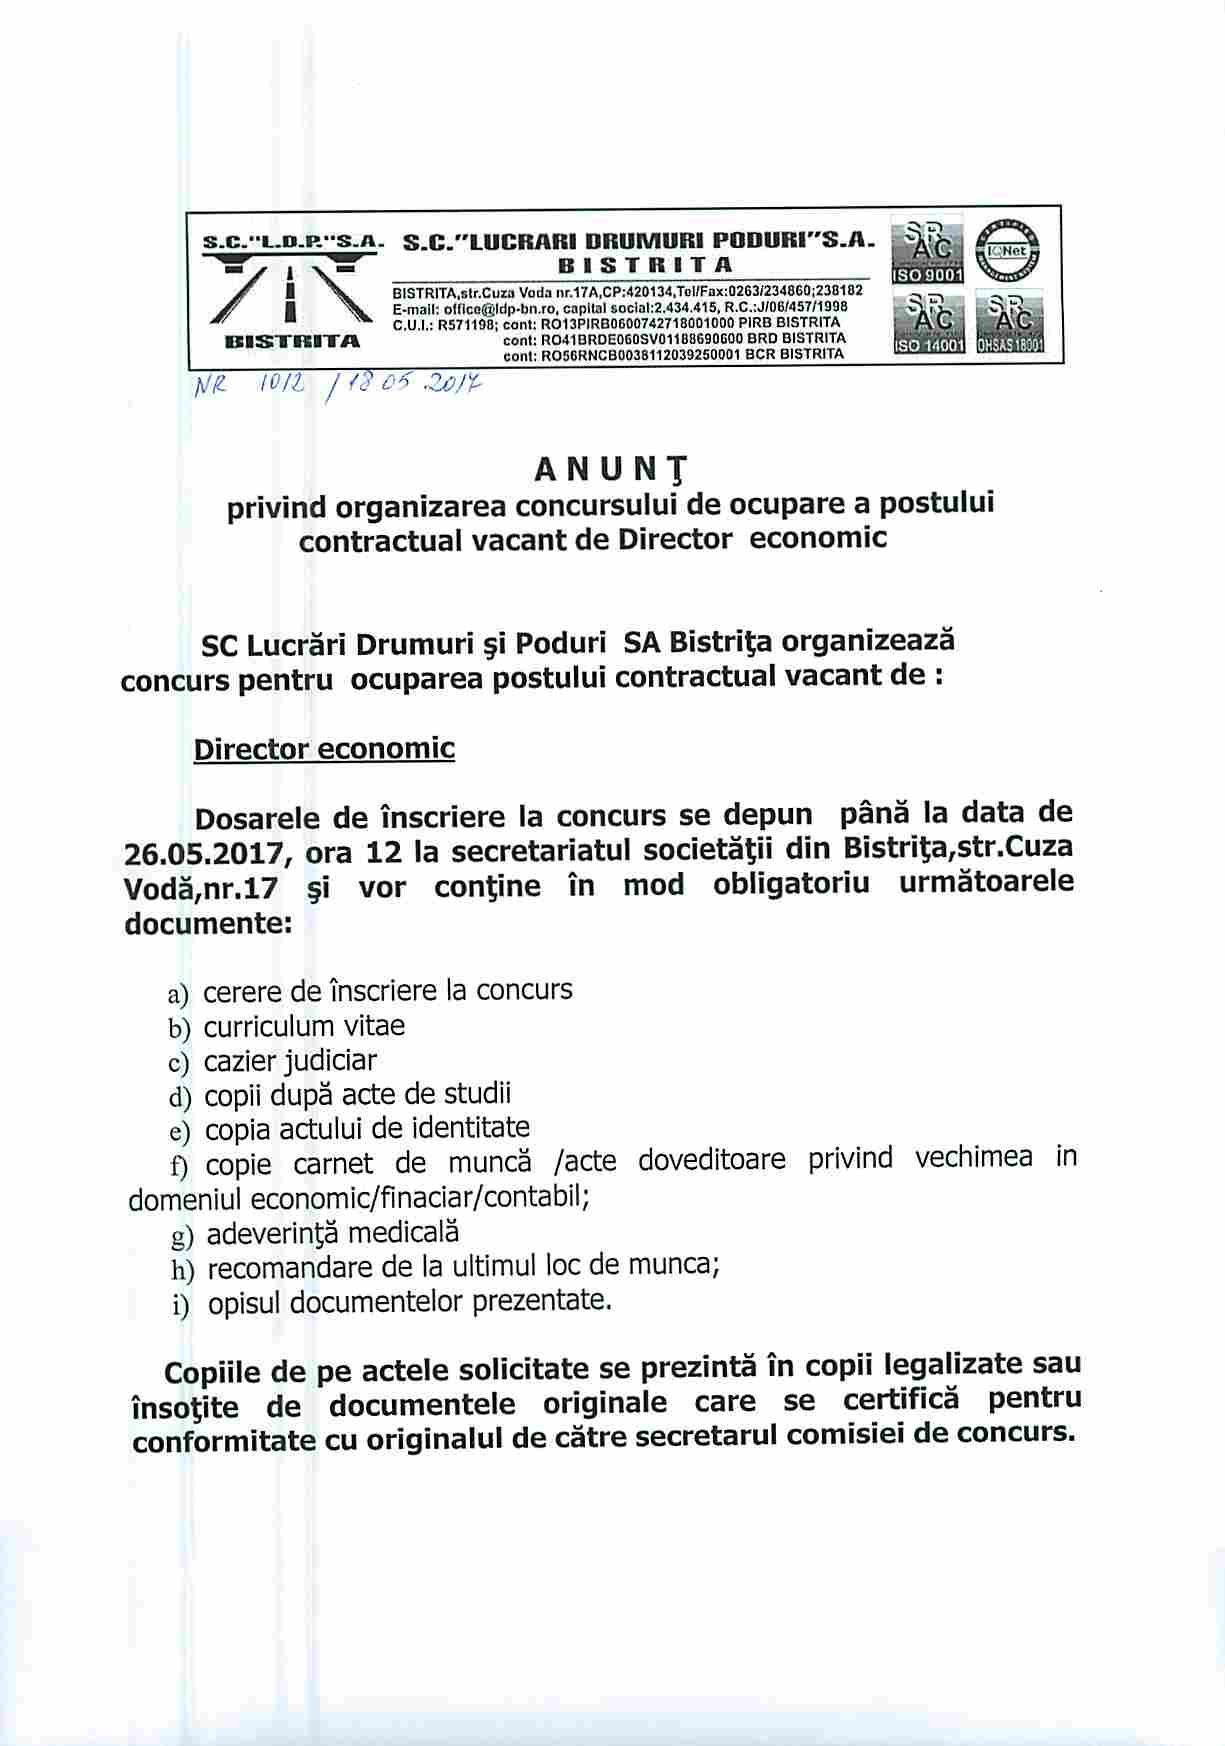 ANUNT-page-001